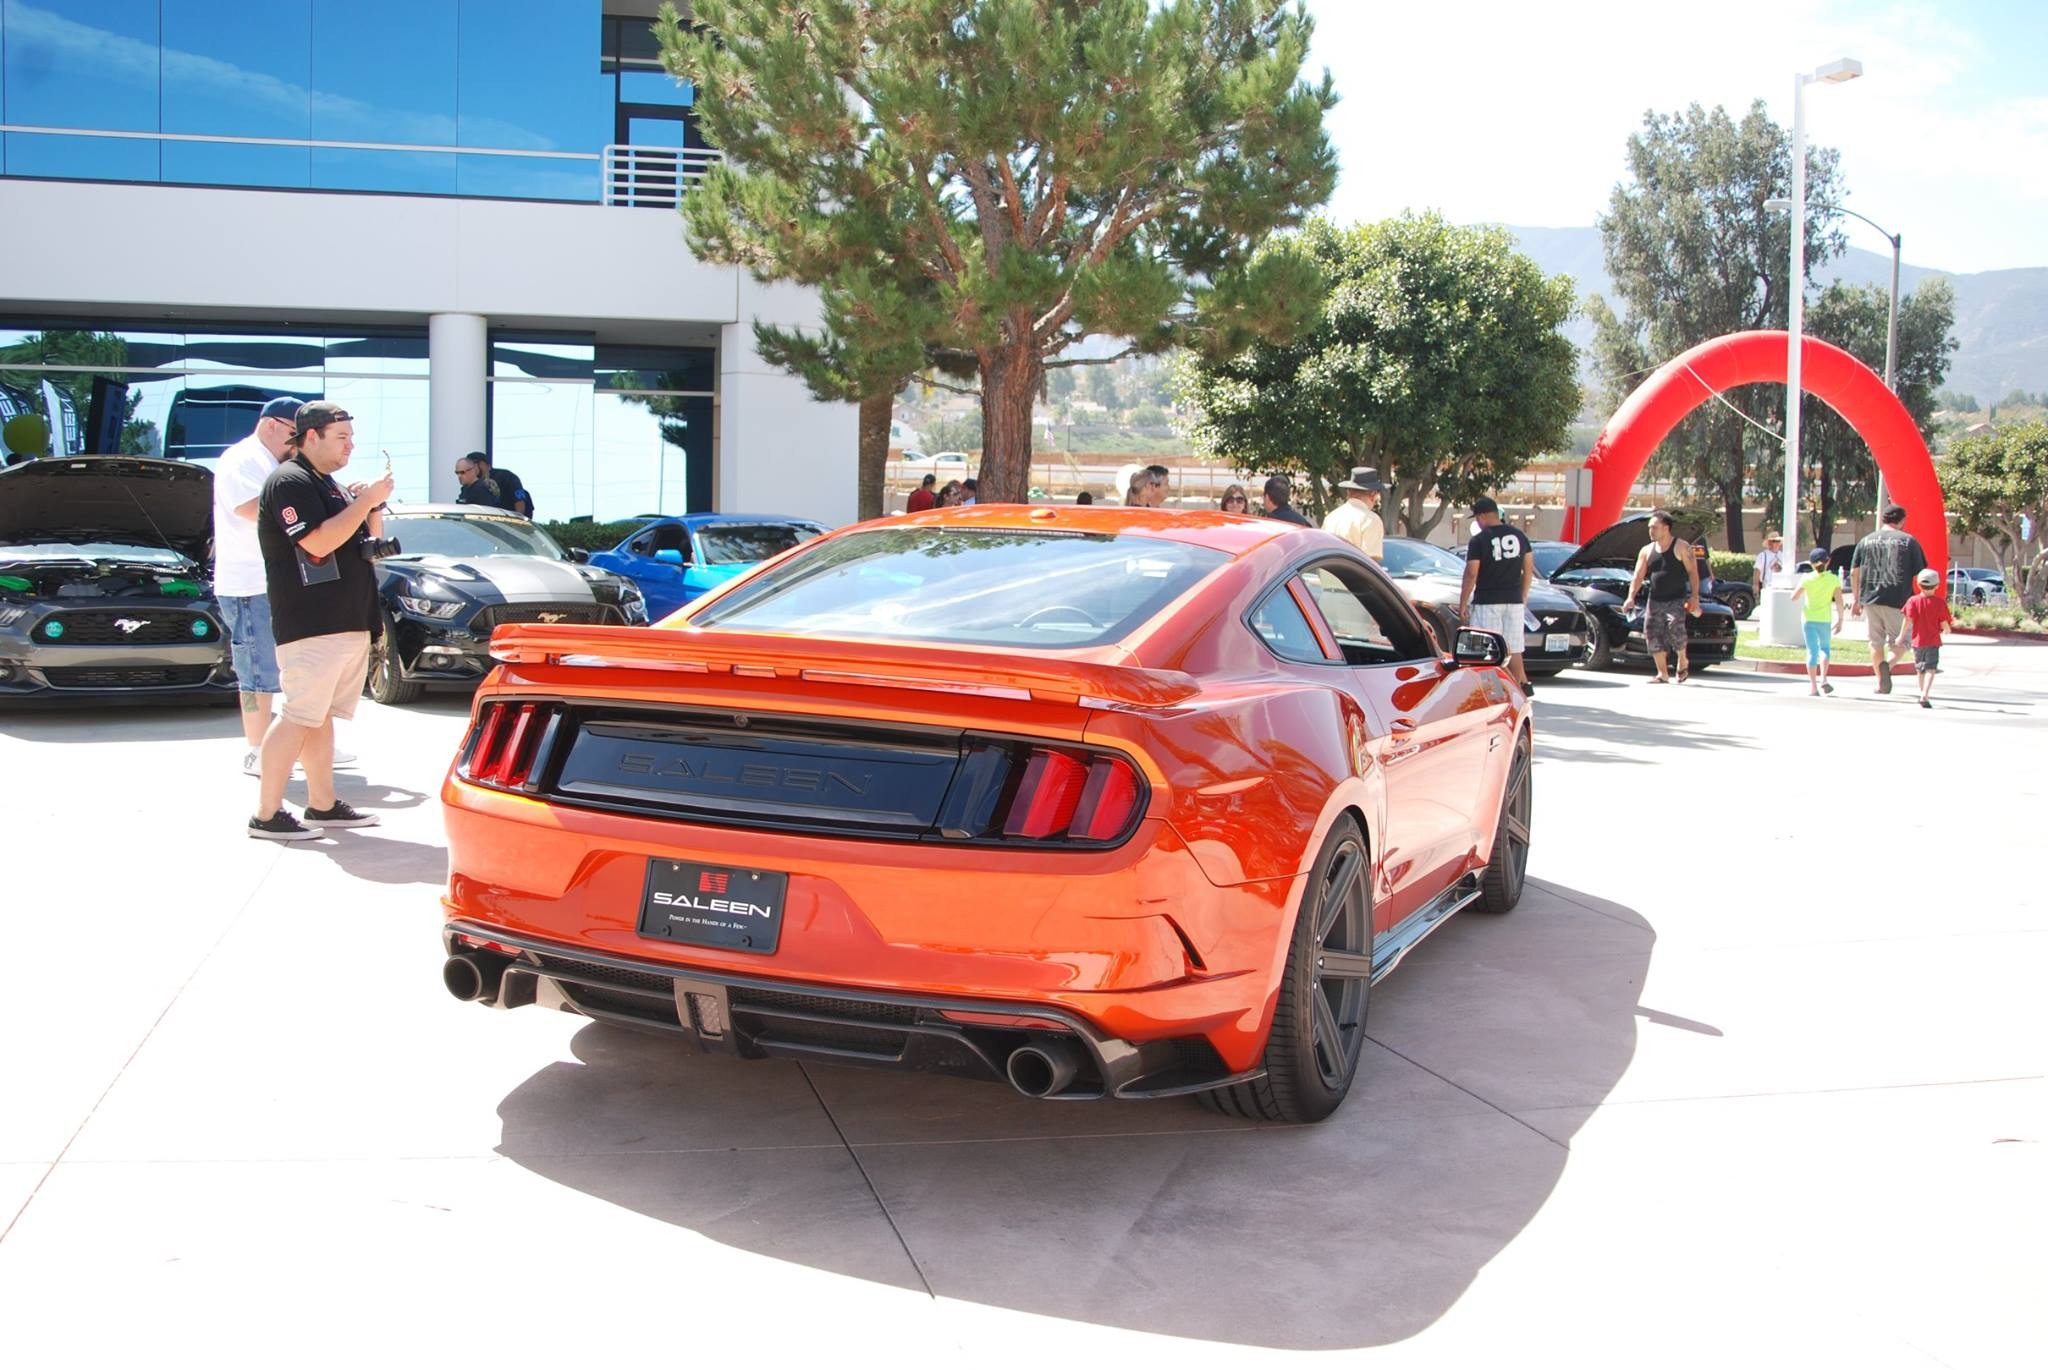 event_2015_19th_saleen_show_0006